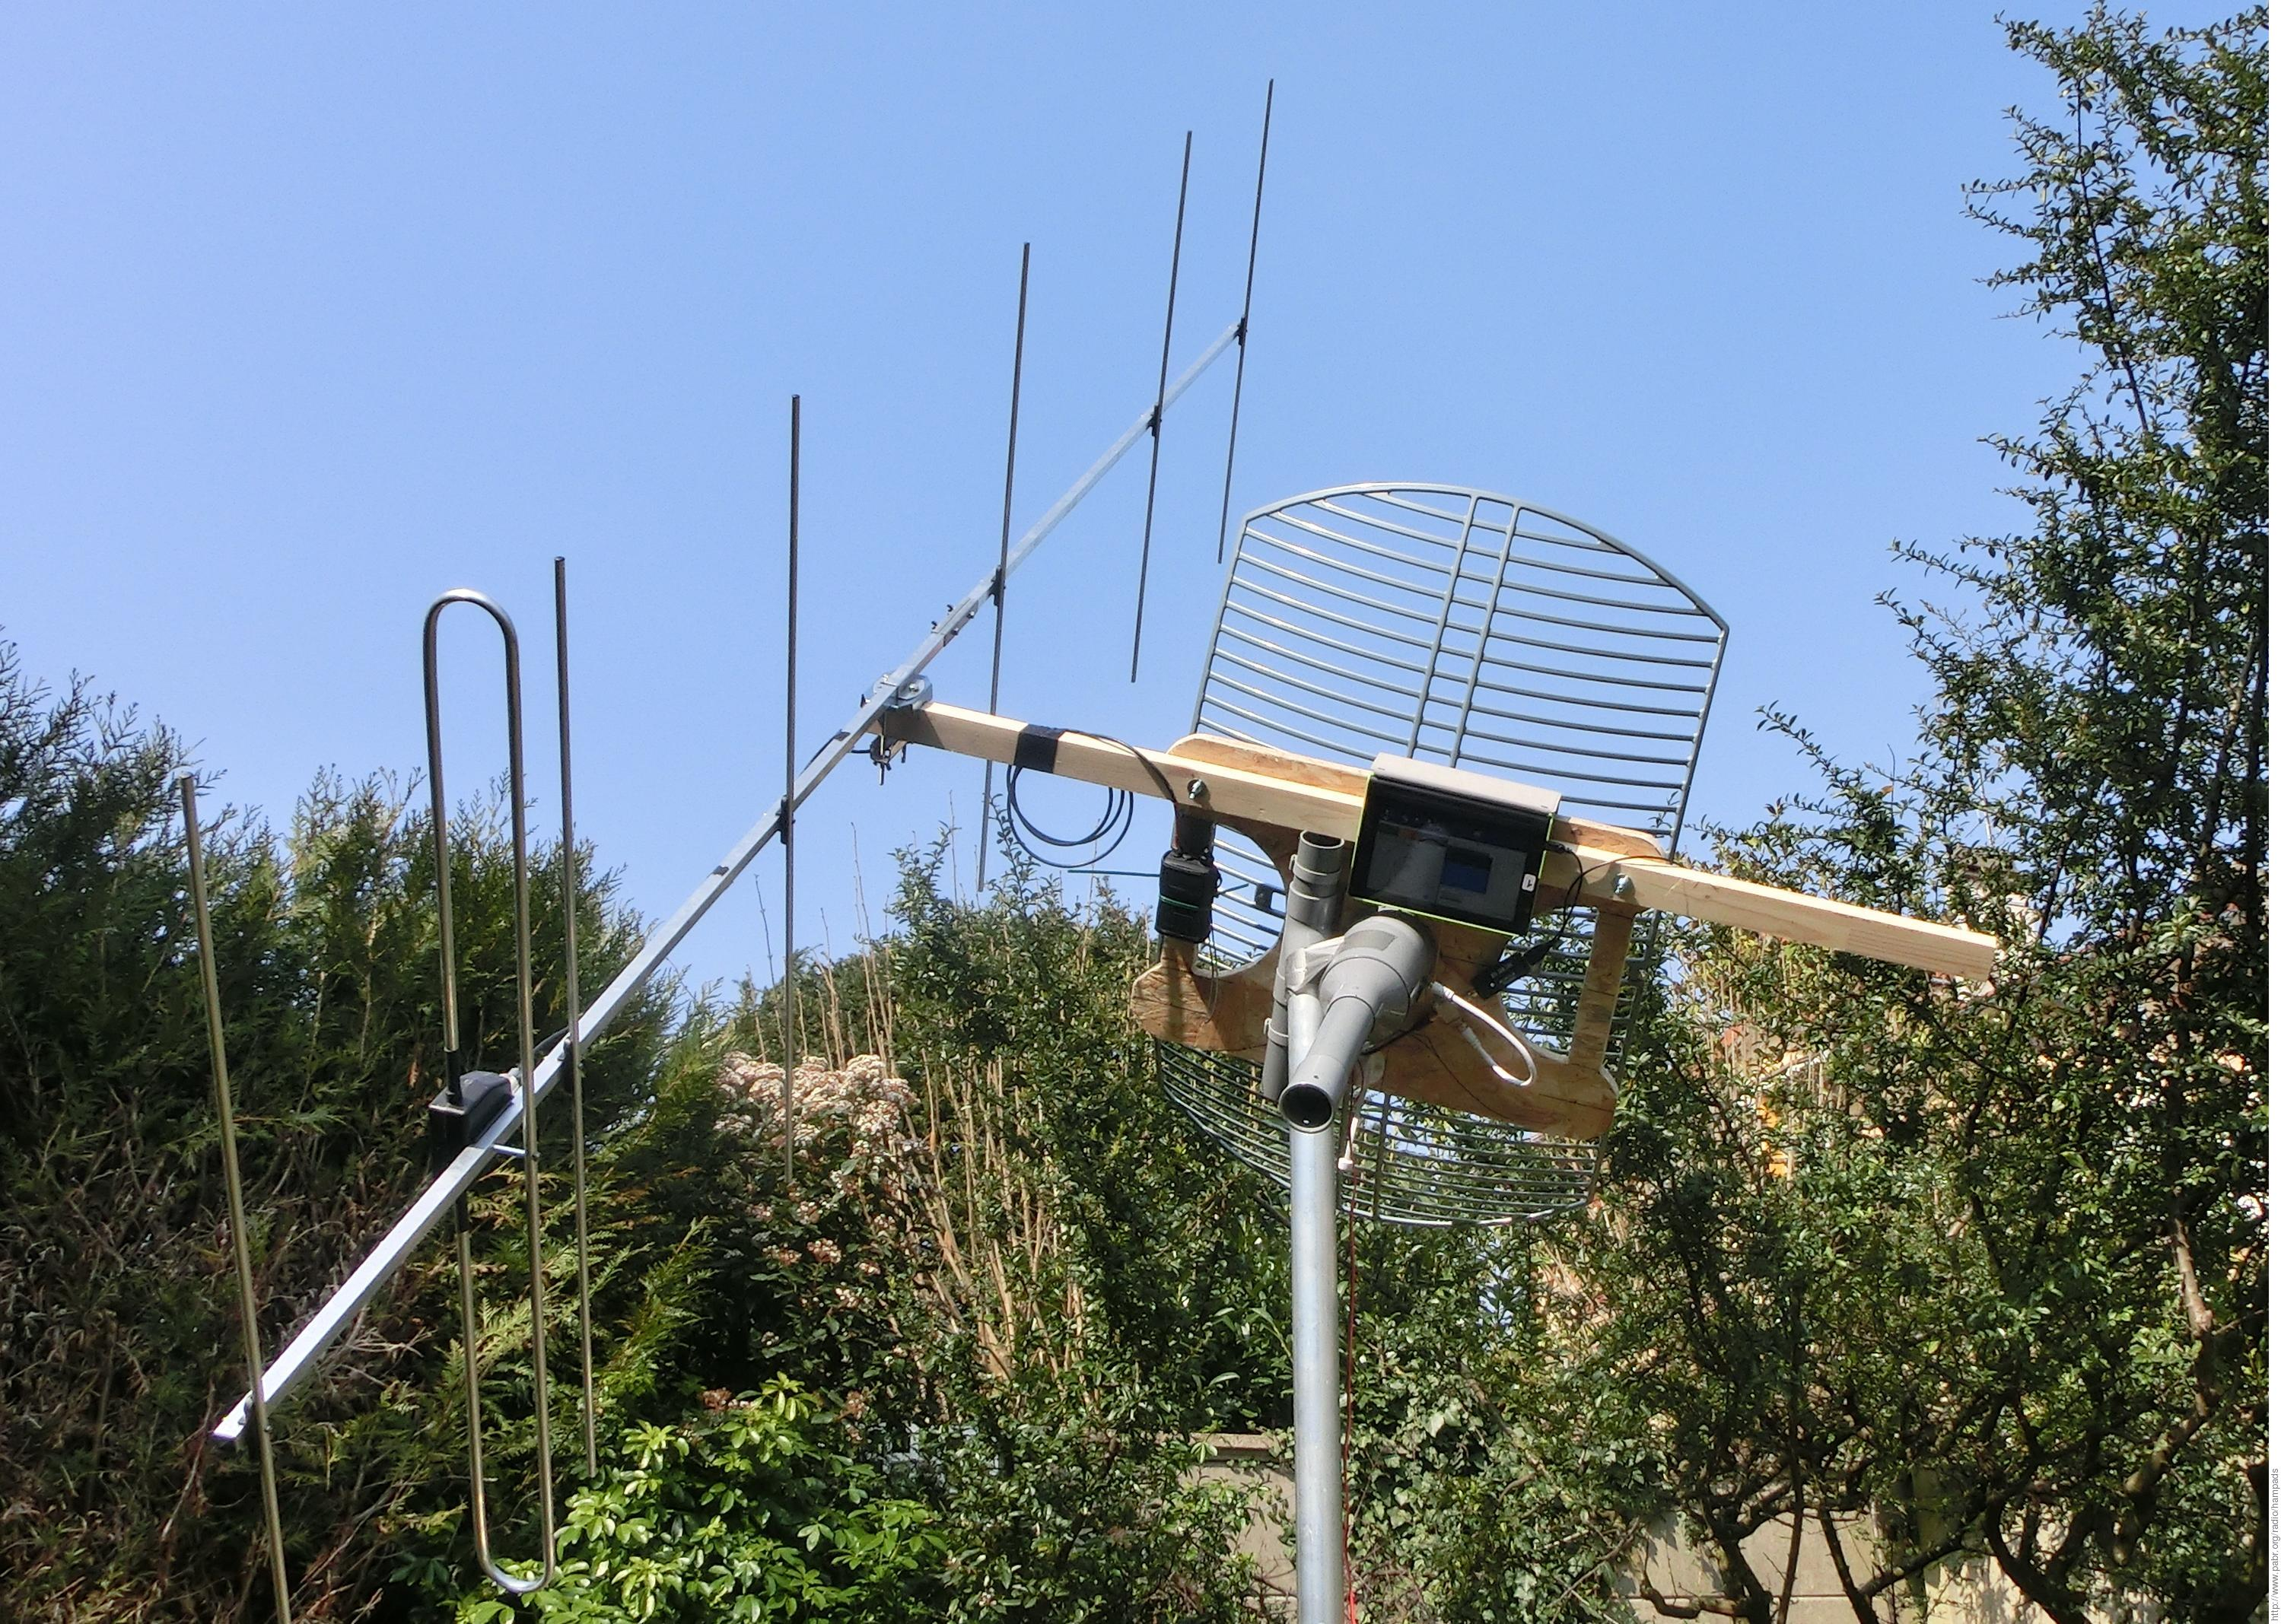 HAMPADS: HAM-Portable Affordable Dish for Satellites